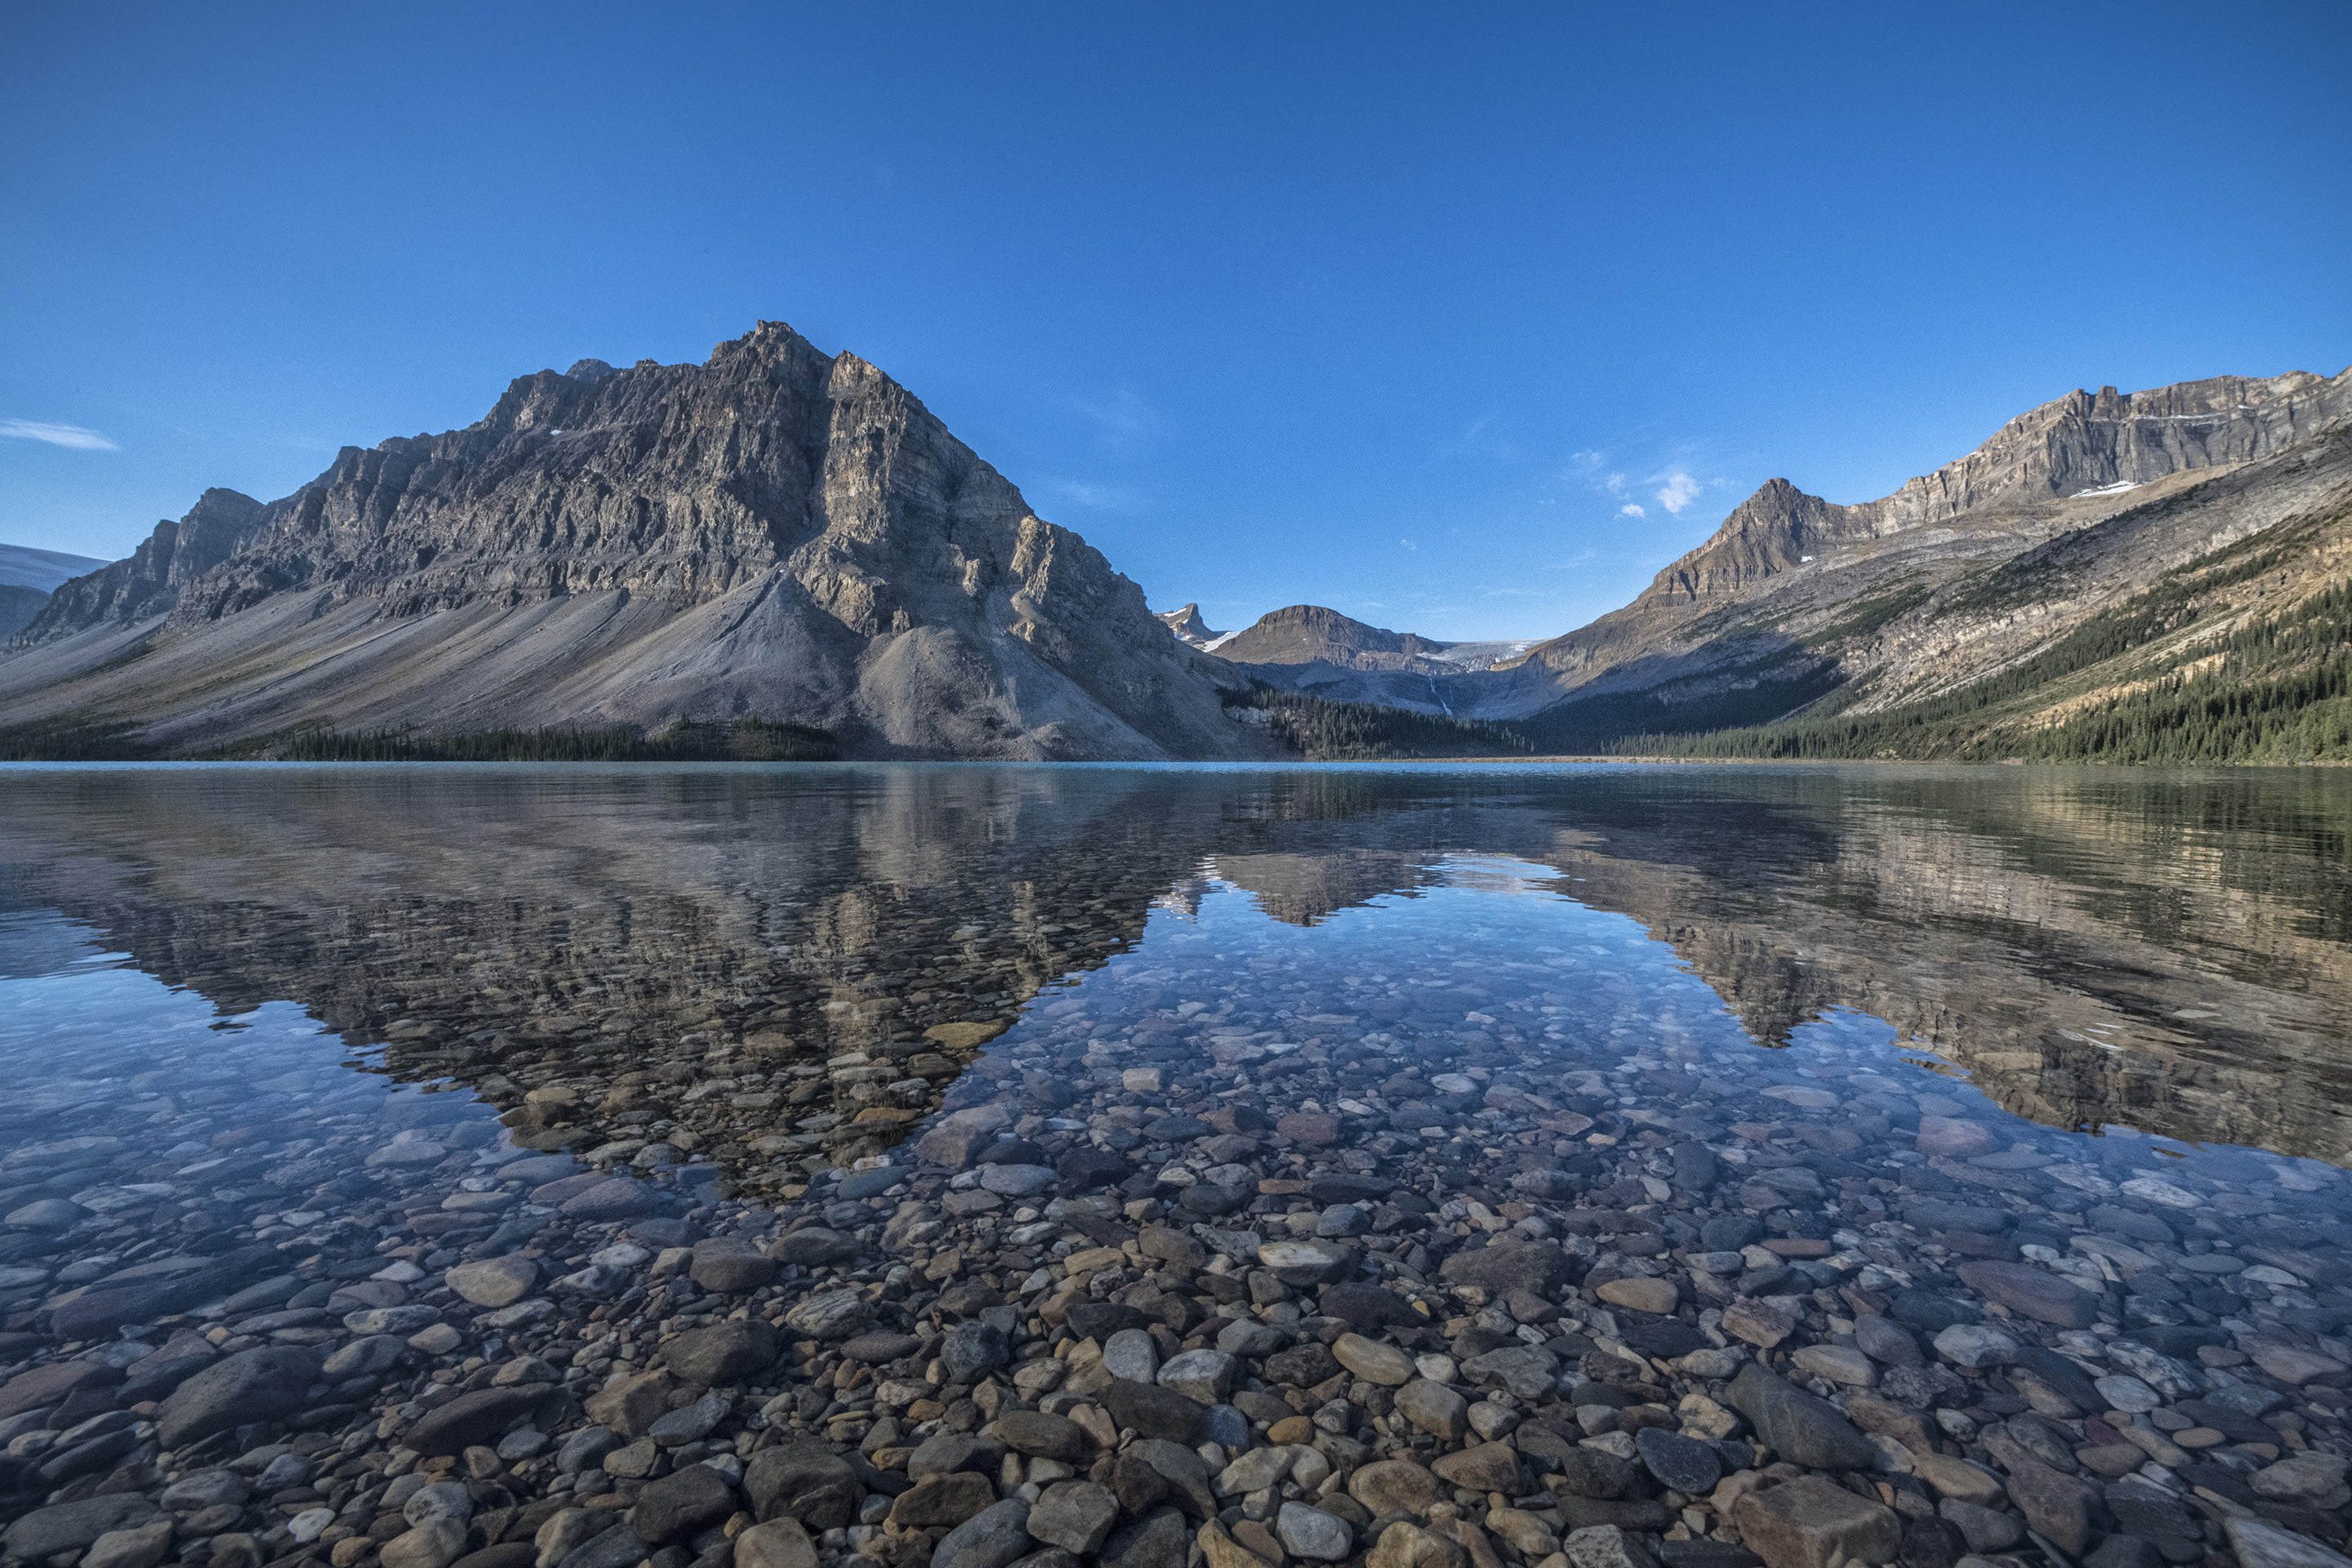 early morning at Bow Lake, Alberta